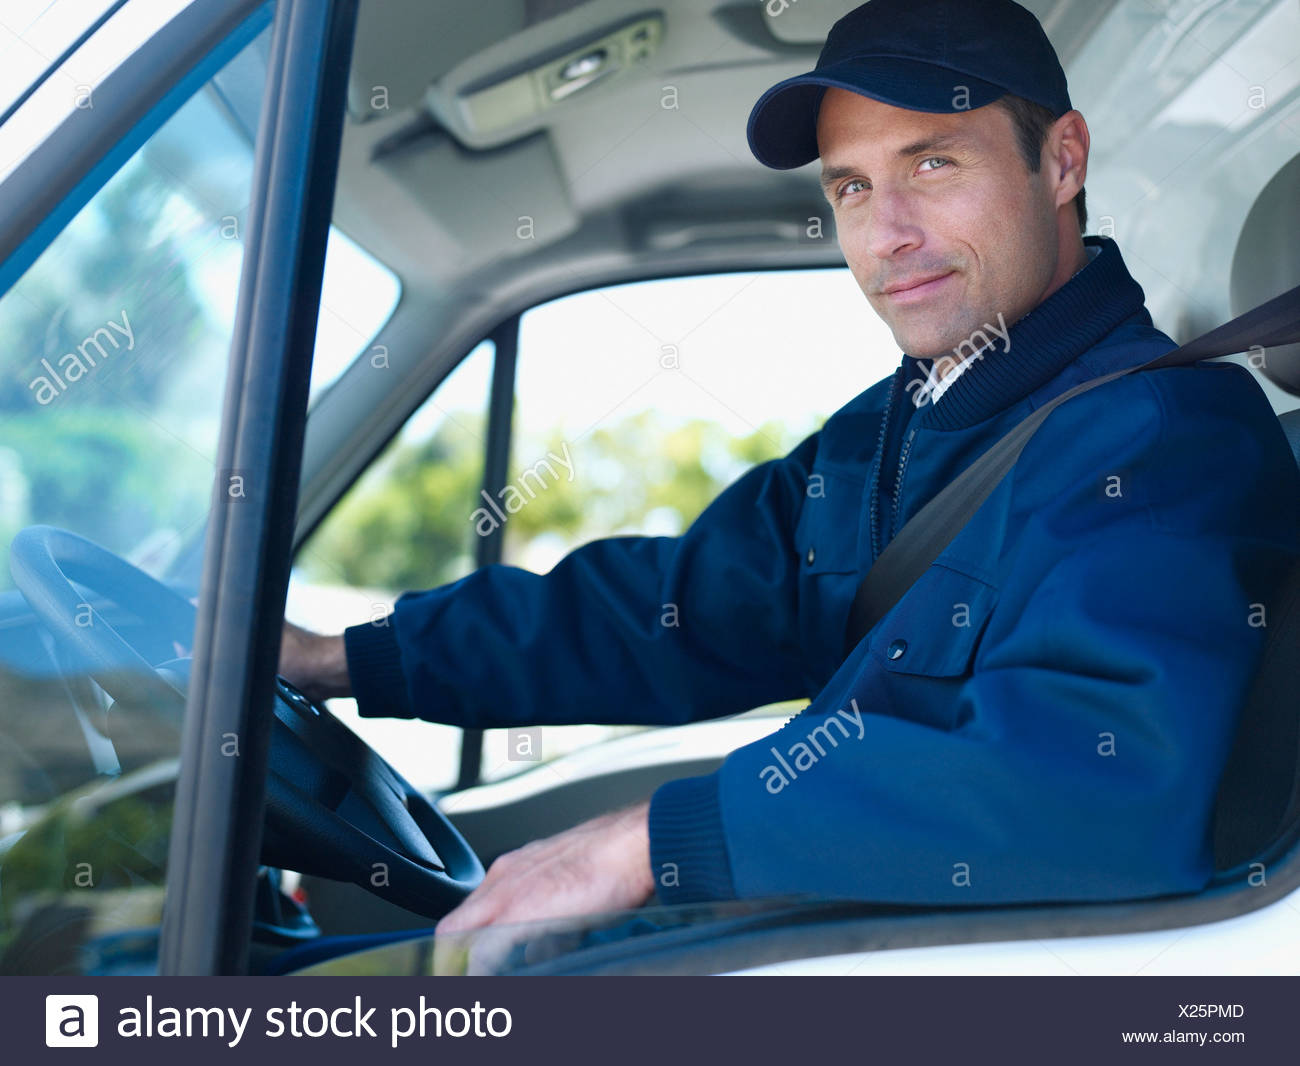 Delivery person driving van - Stock Image